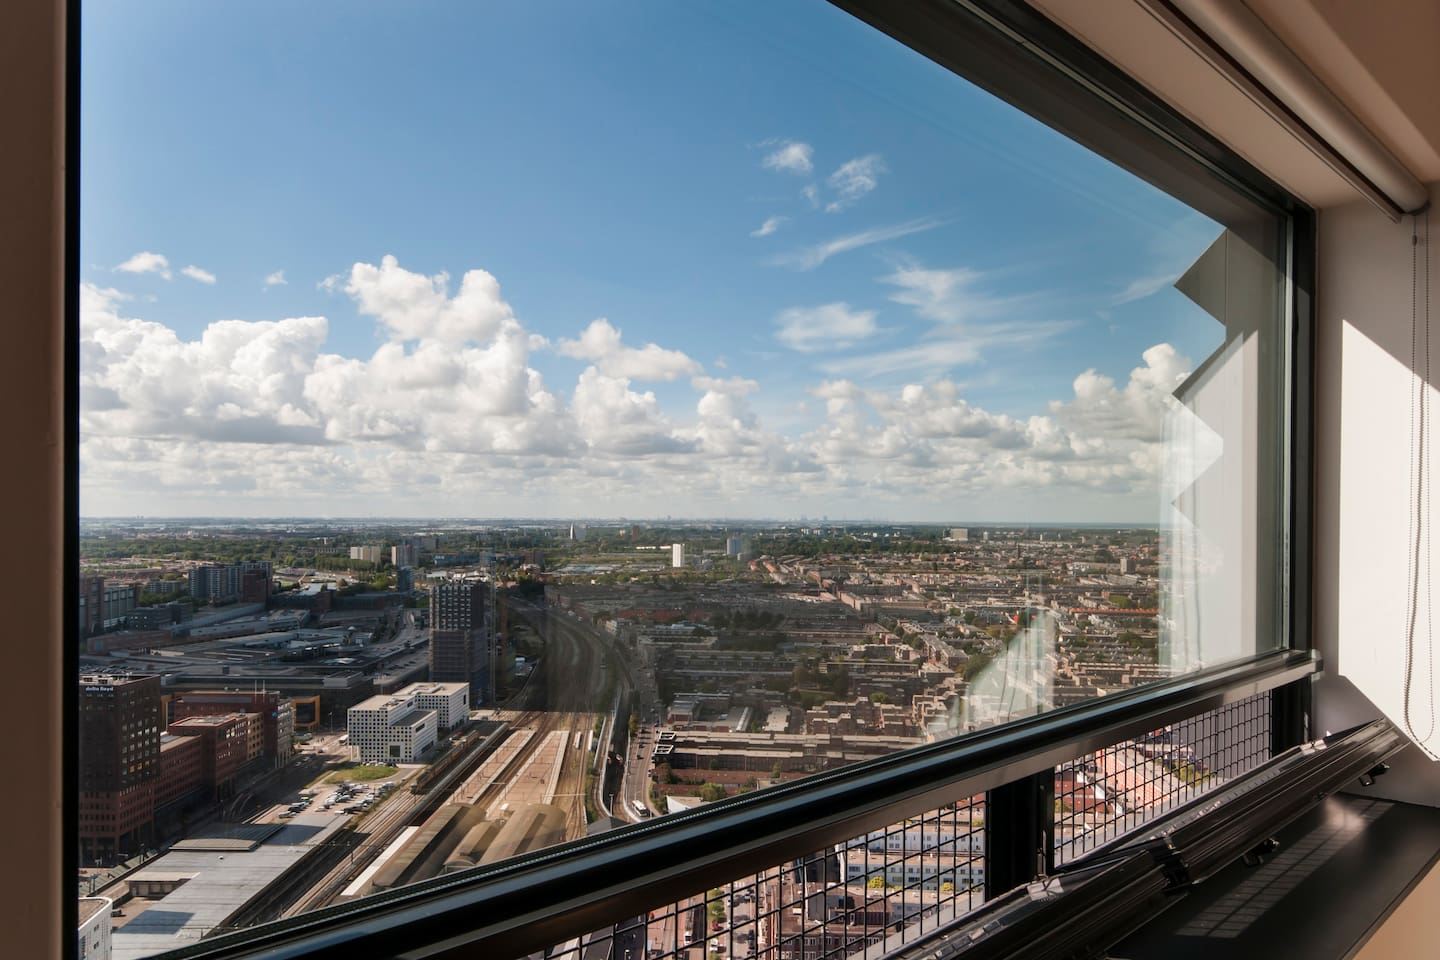 The view from apartment 774 on the 39th floor (130m), towards The Hague and Rotterdam